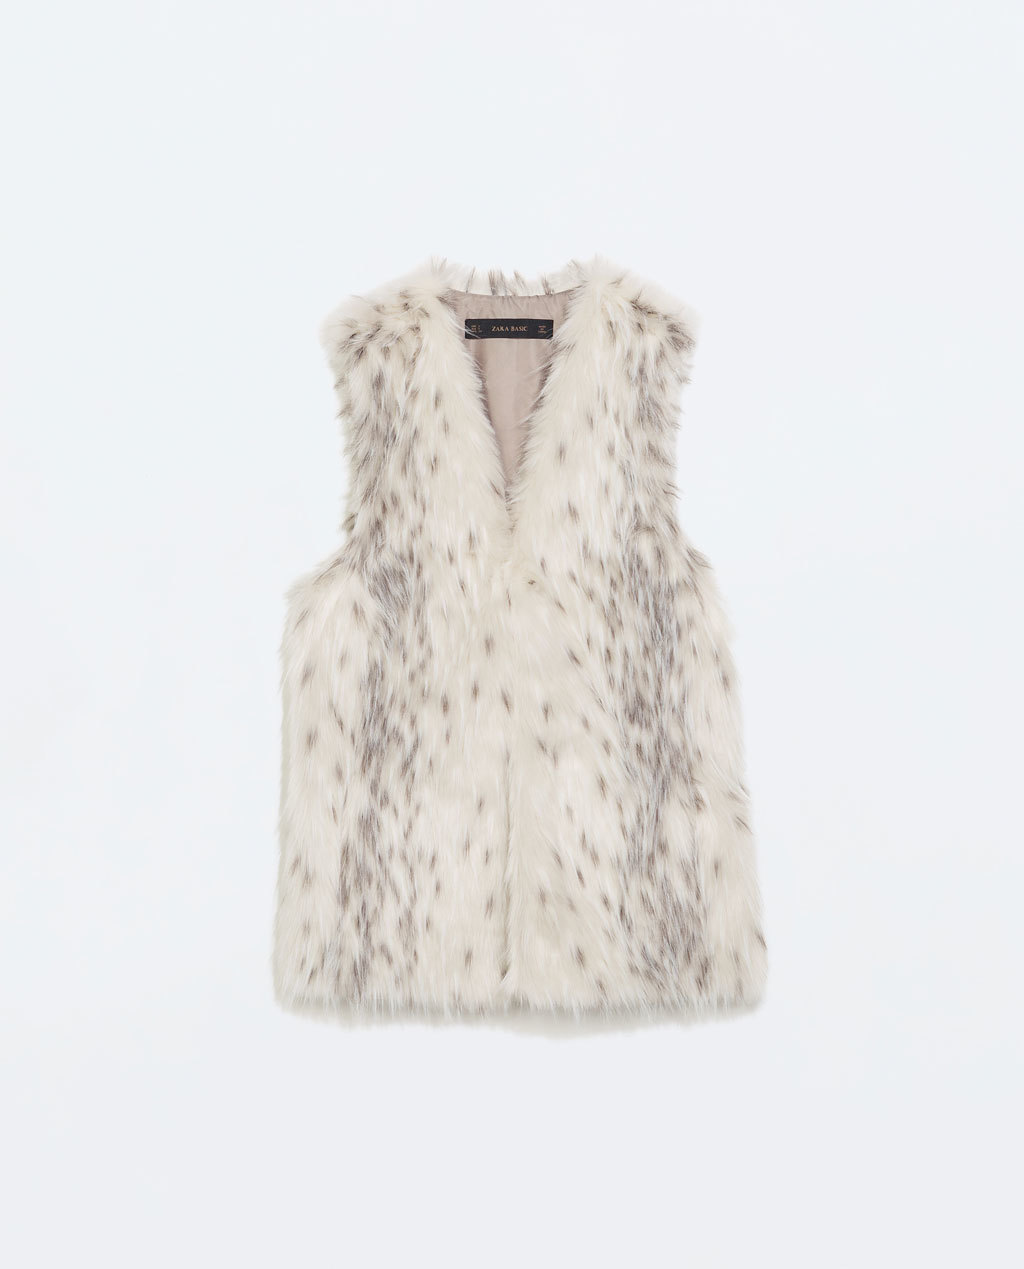 Long Fur Vest - sleeve style: sleeveless; style: gilet; collar: round collar/collarless; predominant colour: ivory/cream; secondary colour: light grey; occasions: casual, creative work; length: standard; fit: straight cut (boxy); sleeve length: sleeveless; texture group: fur; collar break: medium; pattern type: fabric; pattern size: light/subtle; pattern: animal print; season: a/w 2014; trends: warm and fuzzy